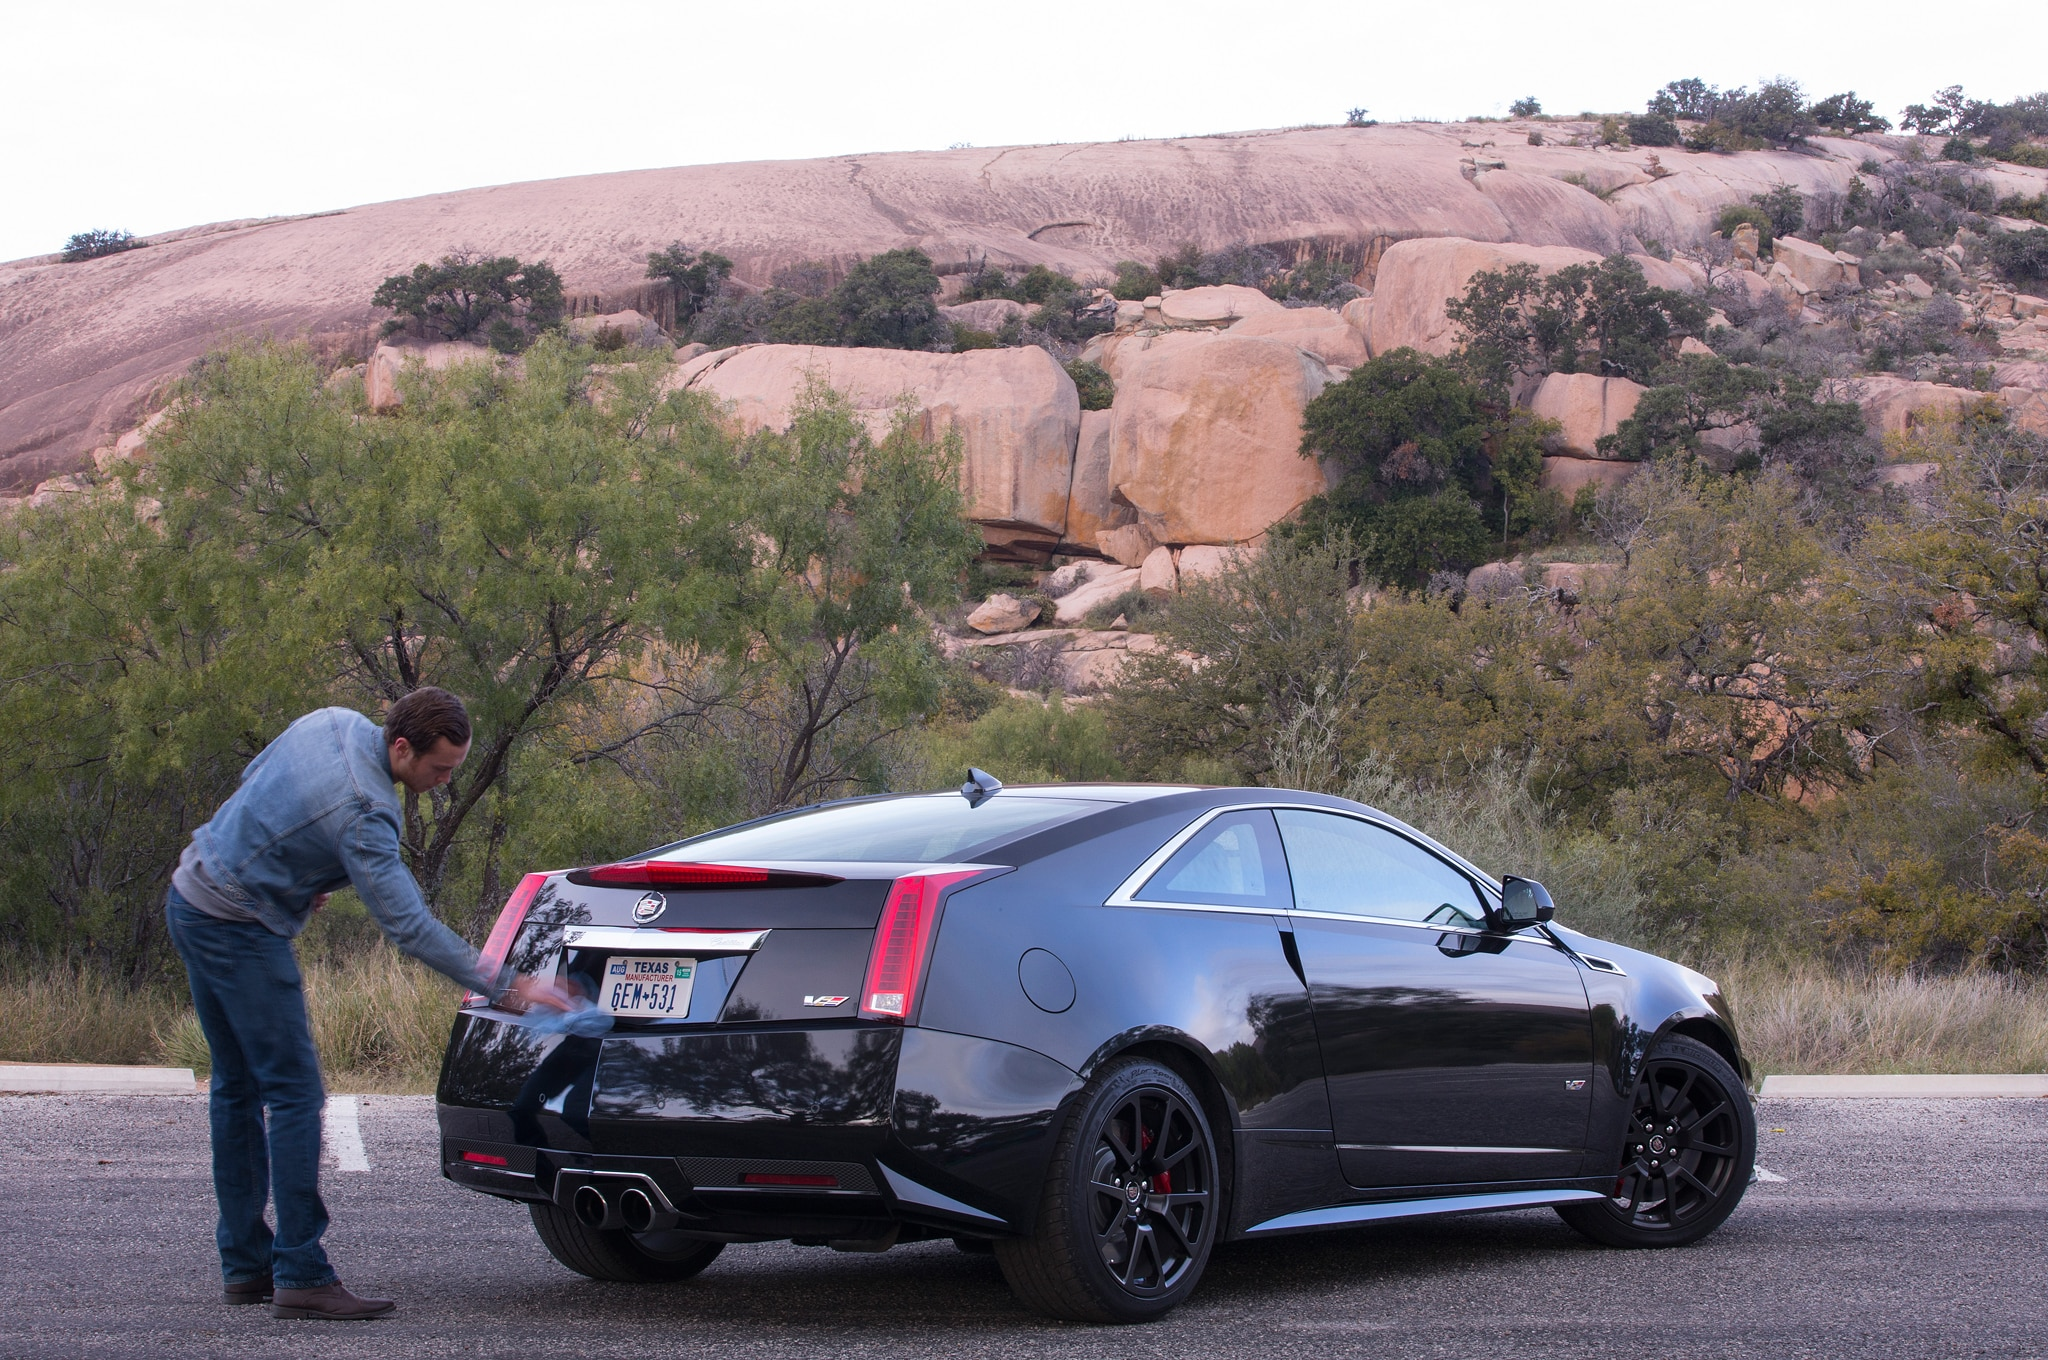 Future cadillac crossovers to adopt xt nomenclature 2015 cadillac cts v coupe rear three quarter 01 sciox Images